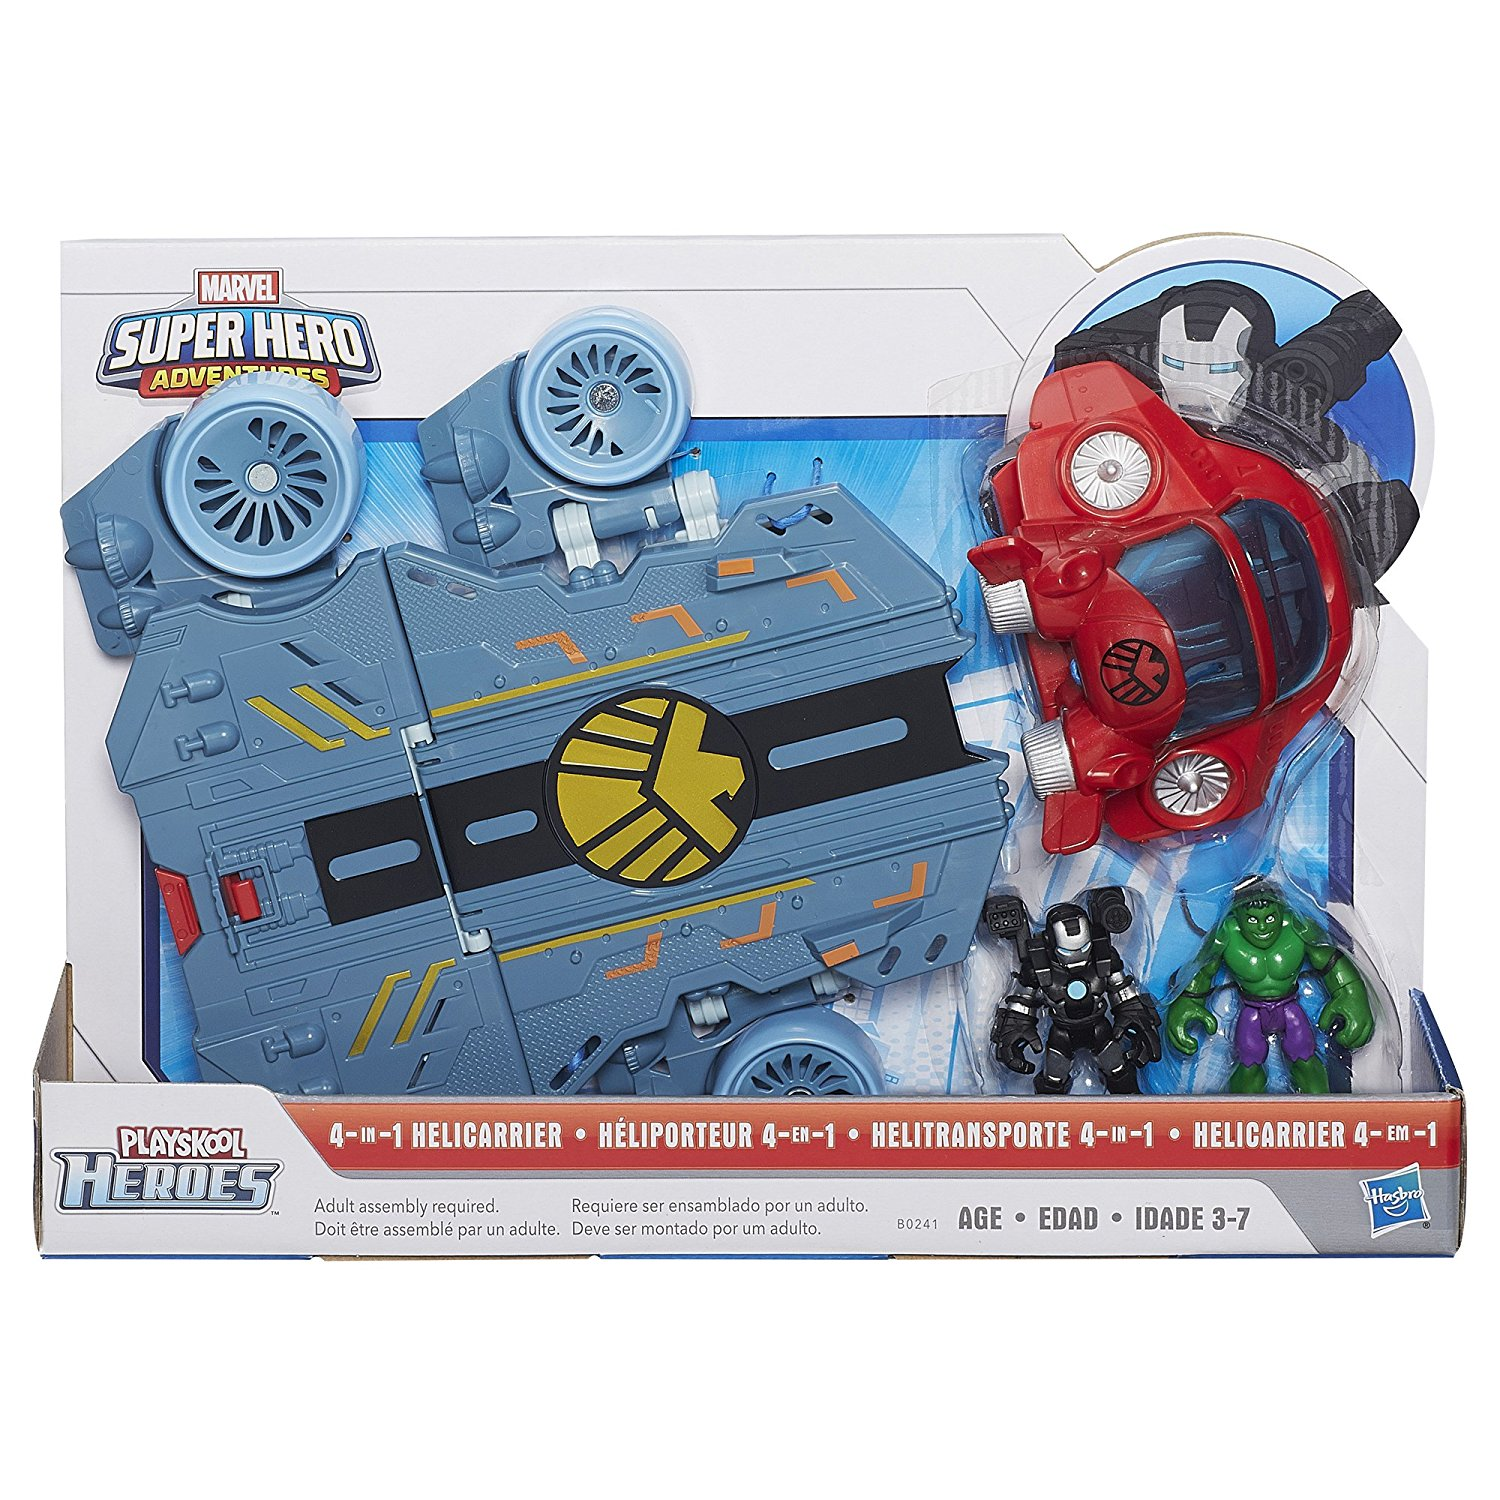 Heroes Marvel Super Hero Adventures Helicarrier Vehicle with War Machine Figure... by